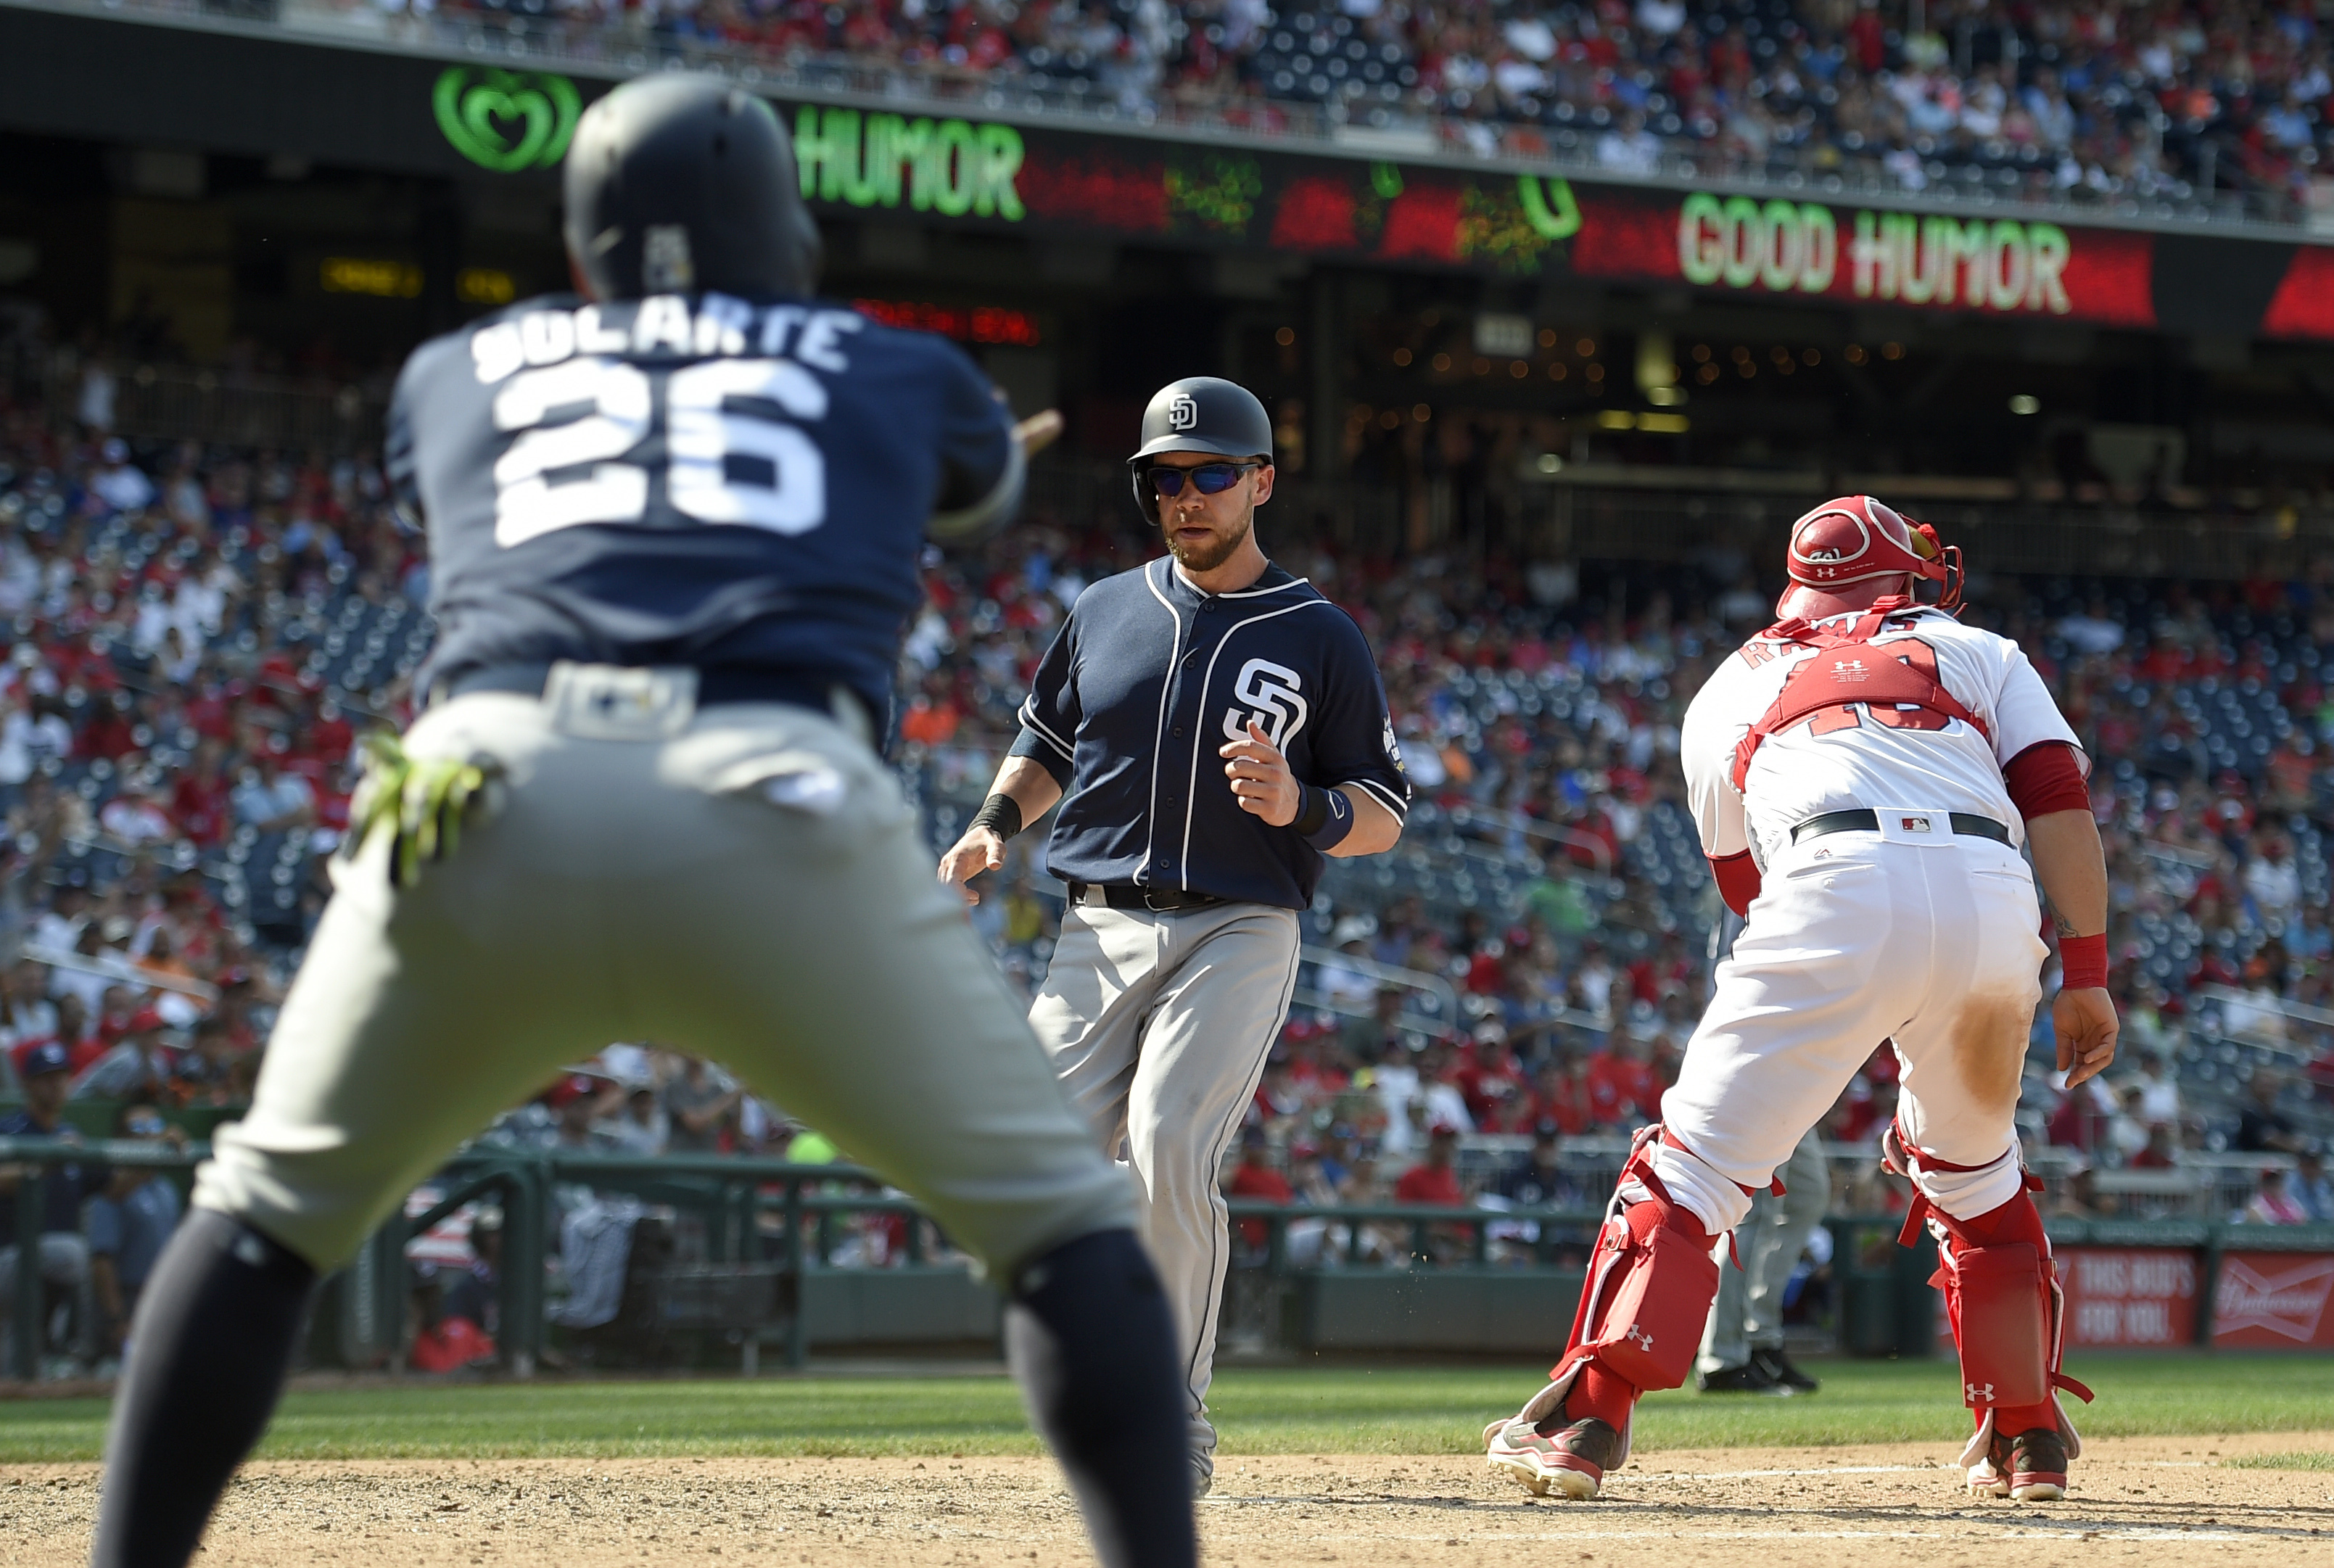 San Diego Padres' Ryan Schimpf, center, comes in to score during the ninth inning of a baseball game past Washington Nationals catcher Wilson Ramos, right, on a double by Alexei Ramirez, Sunday, July 24, 2016, in Washington. Padres' Yangervis Solarte (26)